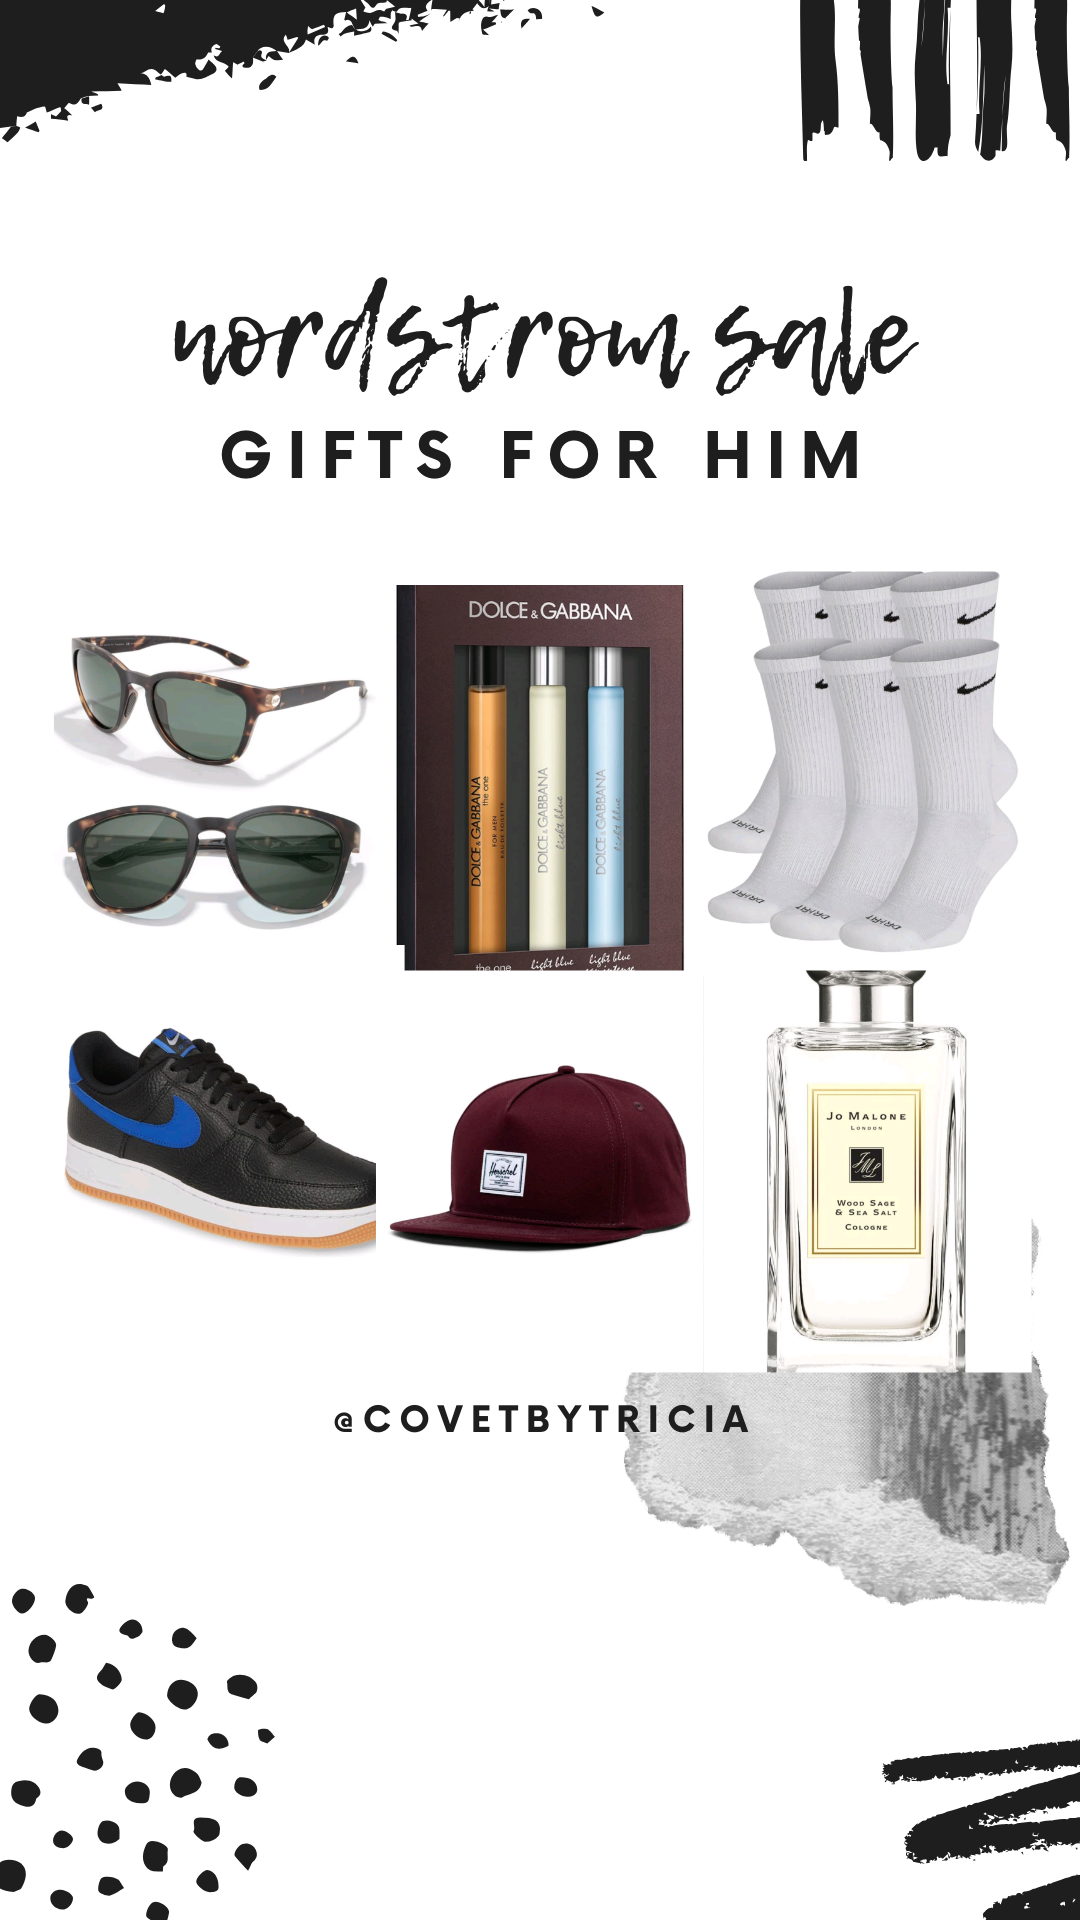 Nordstrom Sale Gift Ideas 2019 - Gifts for her, gifts for him, hostess gifts, gifts for wife, gifts for husband, gifts for girlfriend, gifts for boyfriend. Nordstrom Fall Sale 2019 is live and the gifts are good! #nordstrom #giftideas #christmasgifts